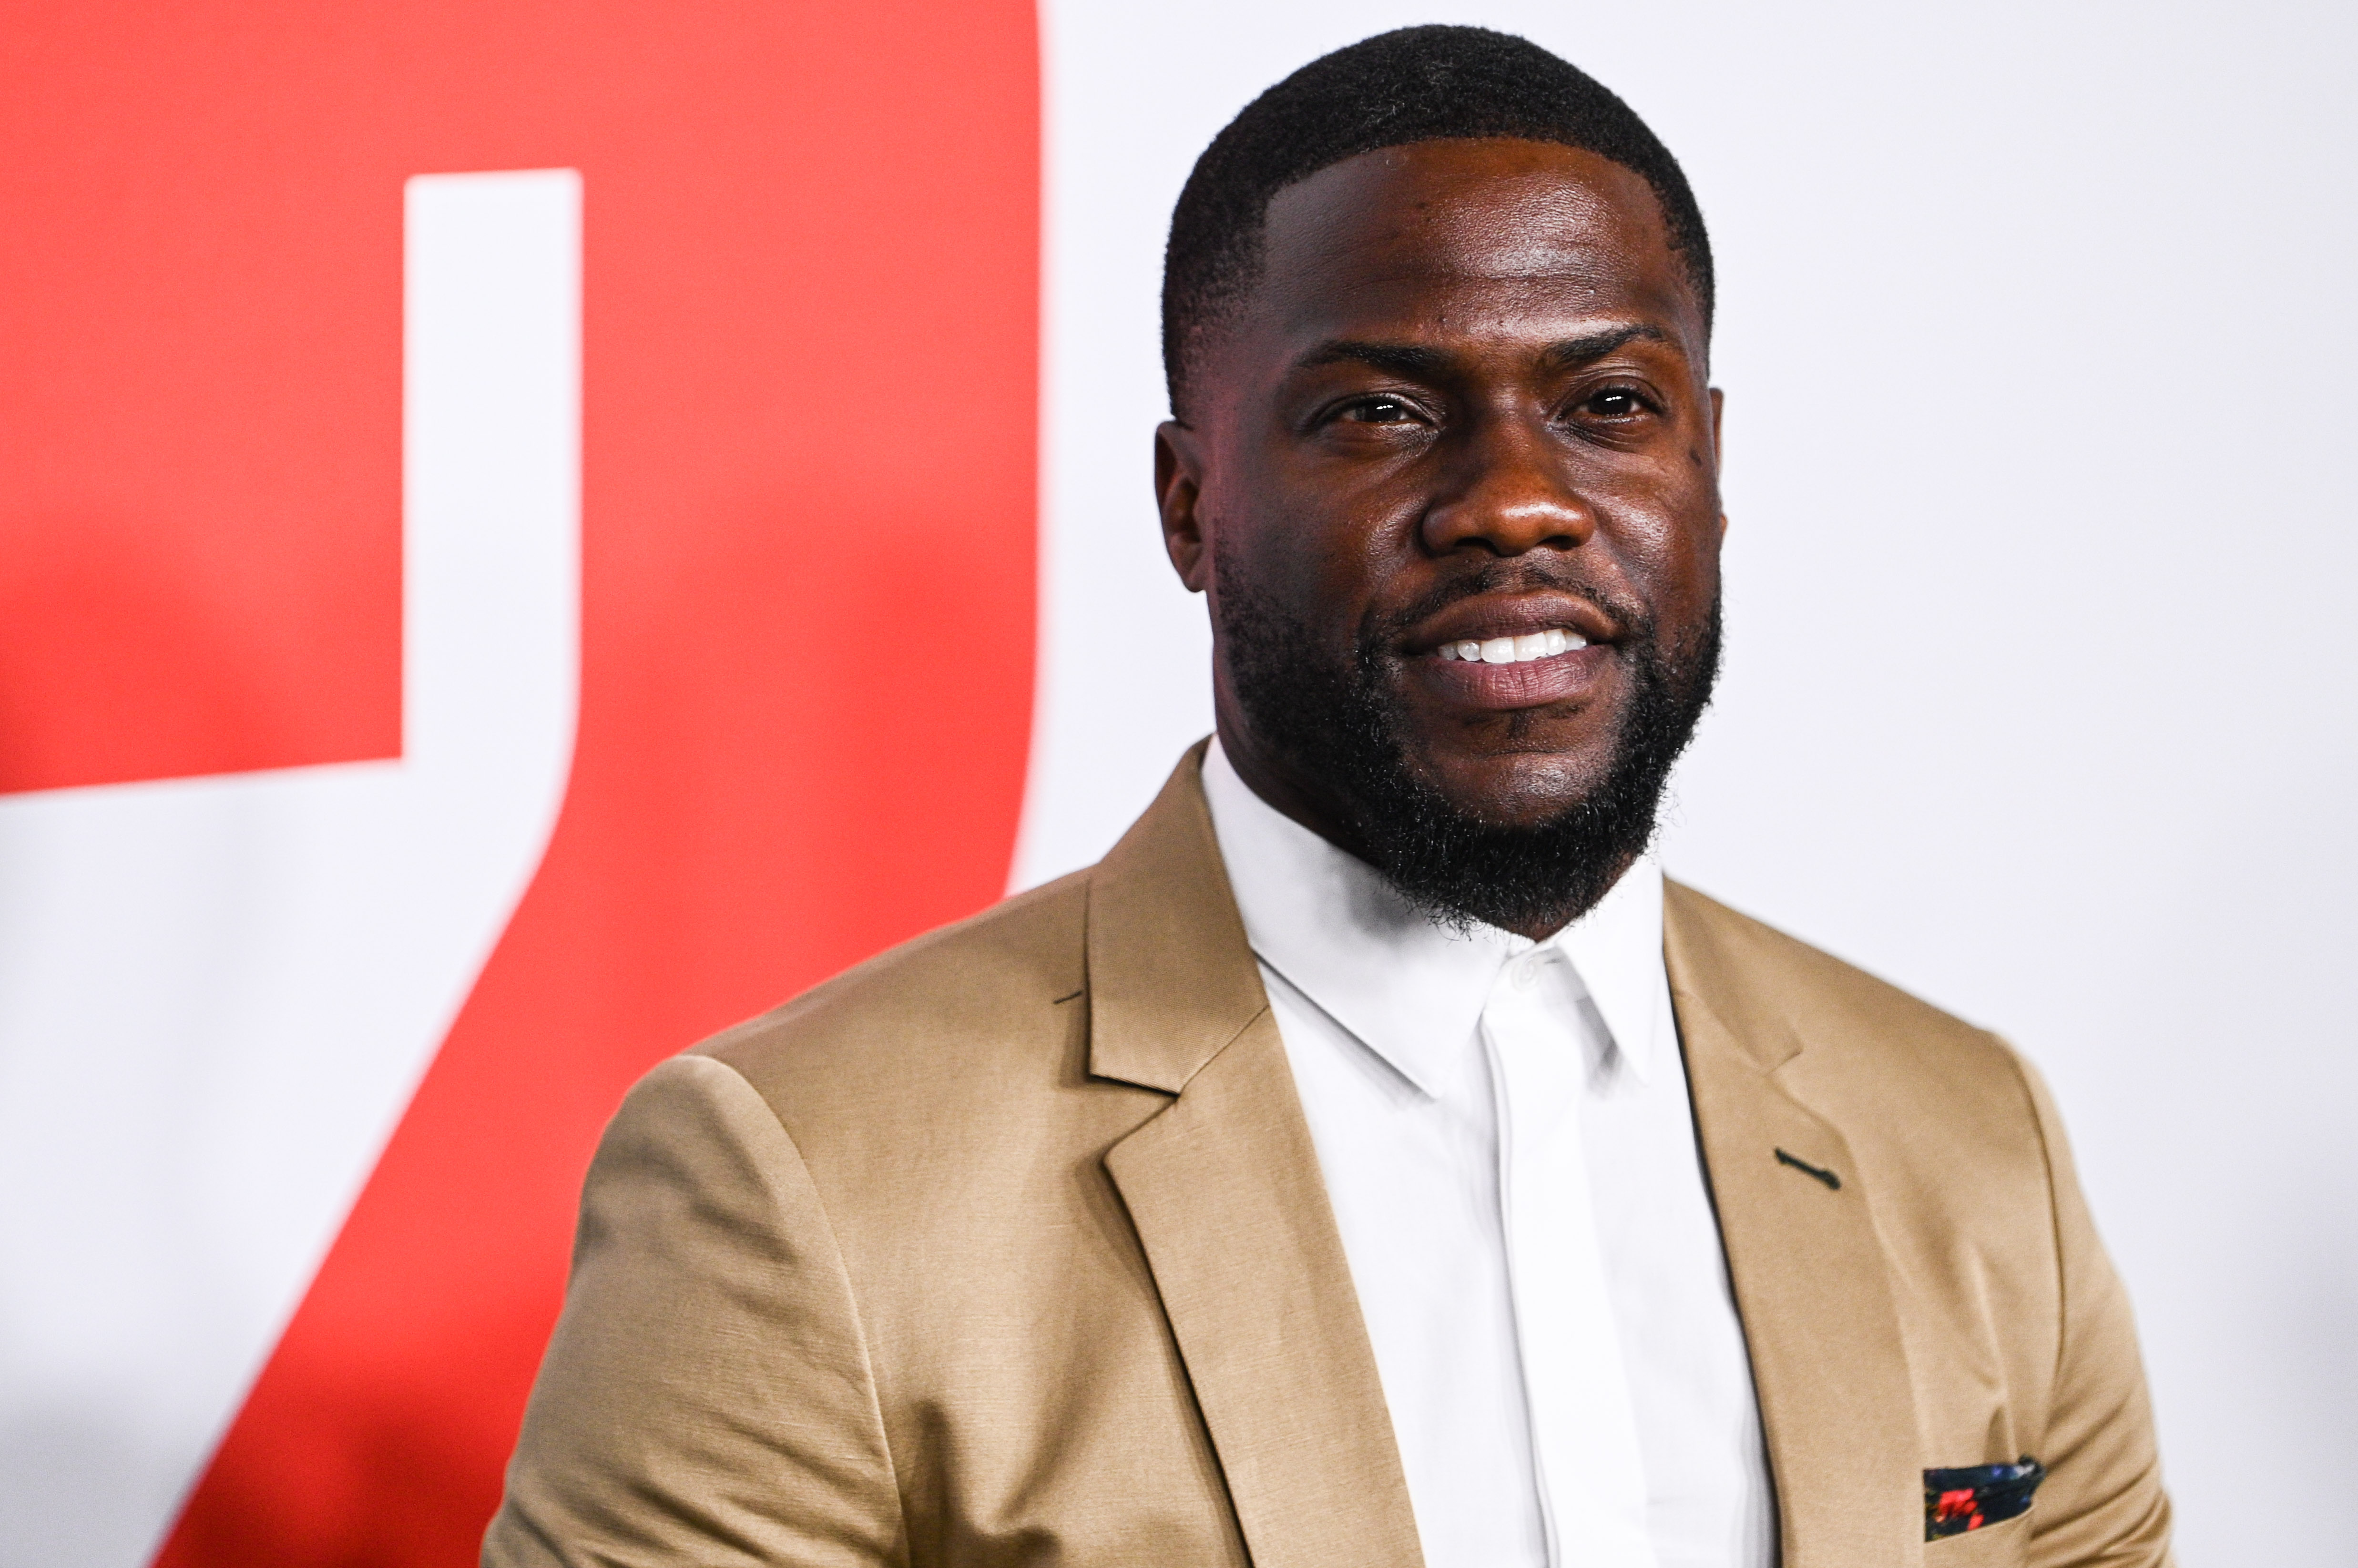 Kevin Hart on cancel culture: 'I understand people are human'